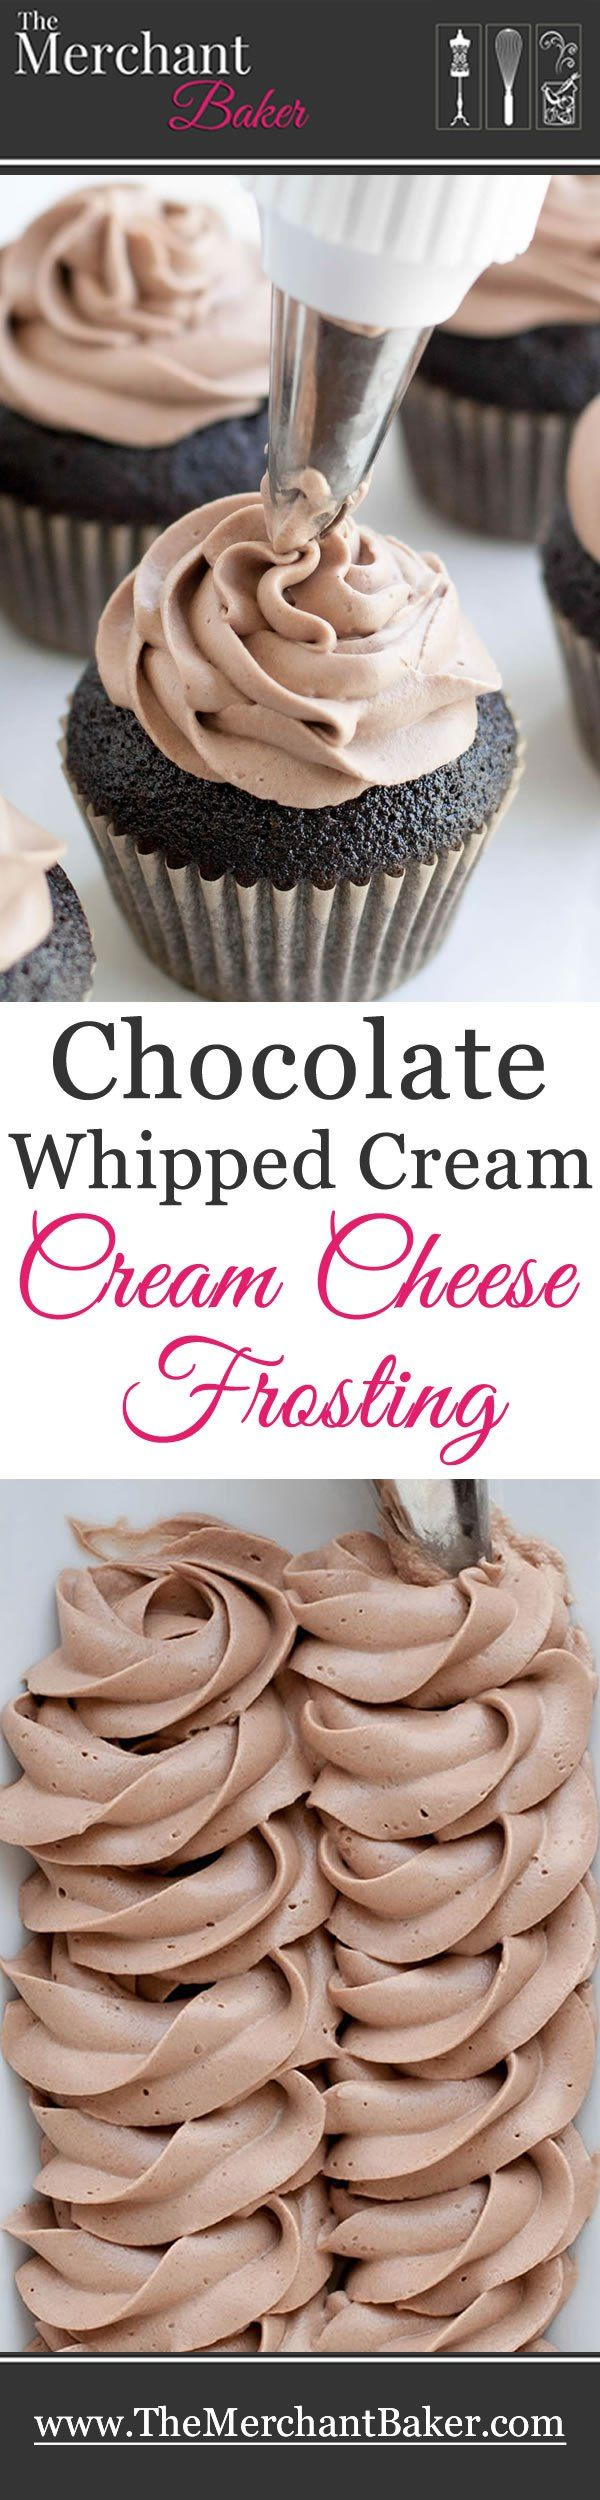 Check out Chocolate Whipped Cream Cream Cheese Frosting. It's so ...